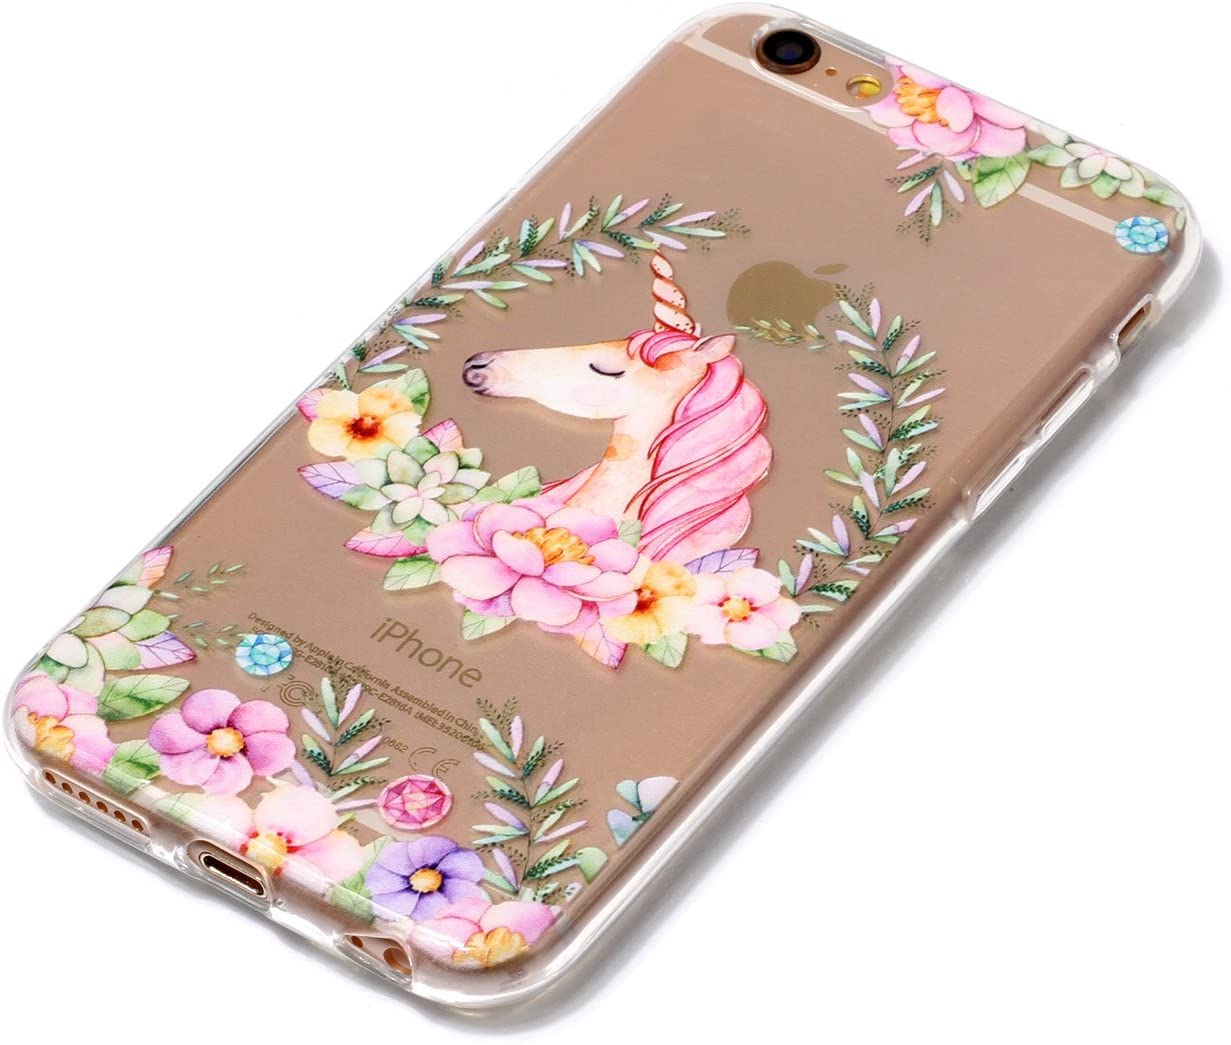 Shock Absorption Scratch Resistant TPU Skin Silicone Full-body Protective for Apple iPhone 6 6S iPhone 6 6S Case Peach blossom Fashional Soft Transparent Slim Thin